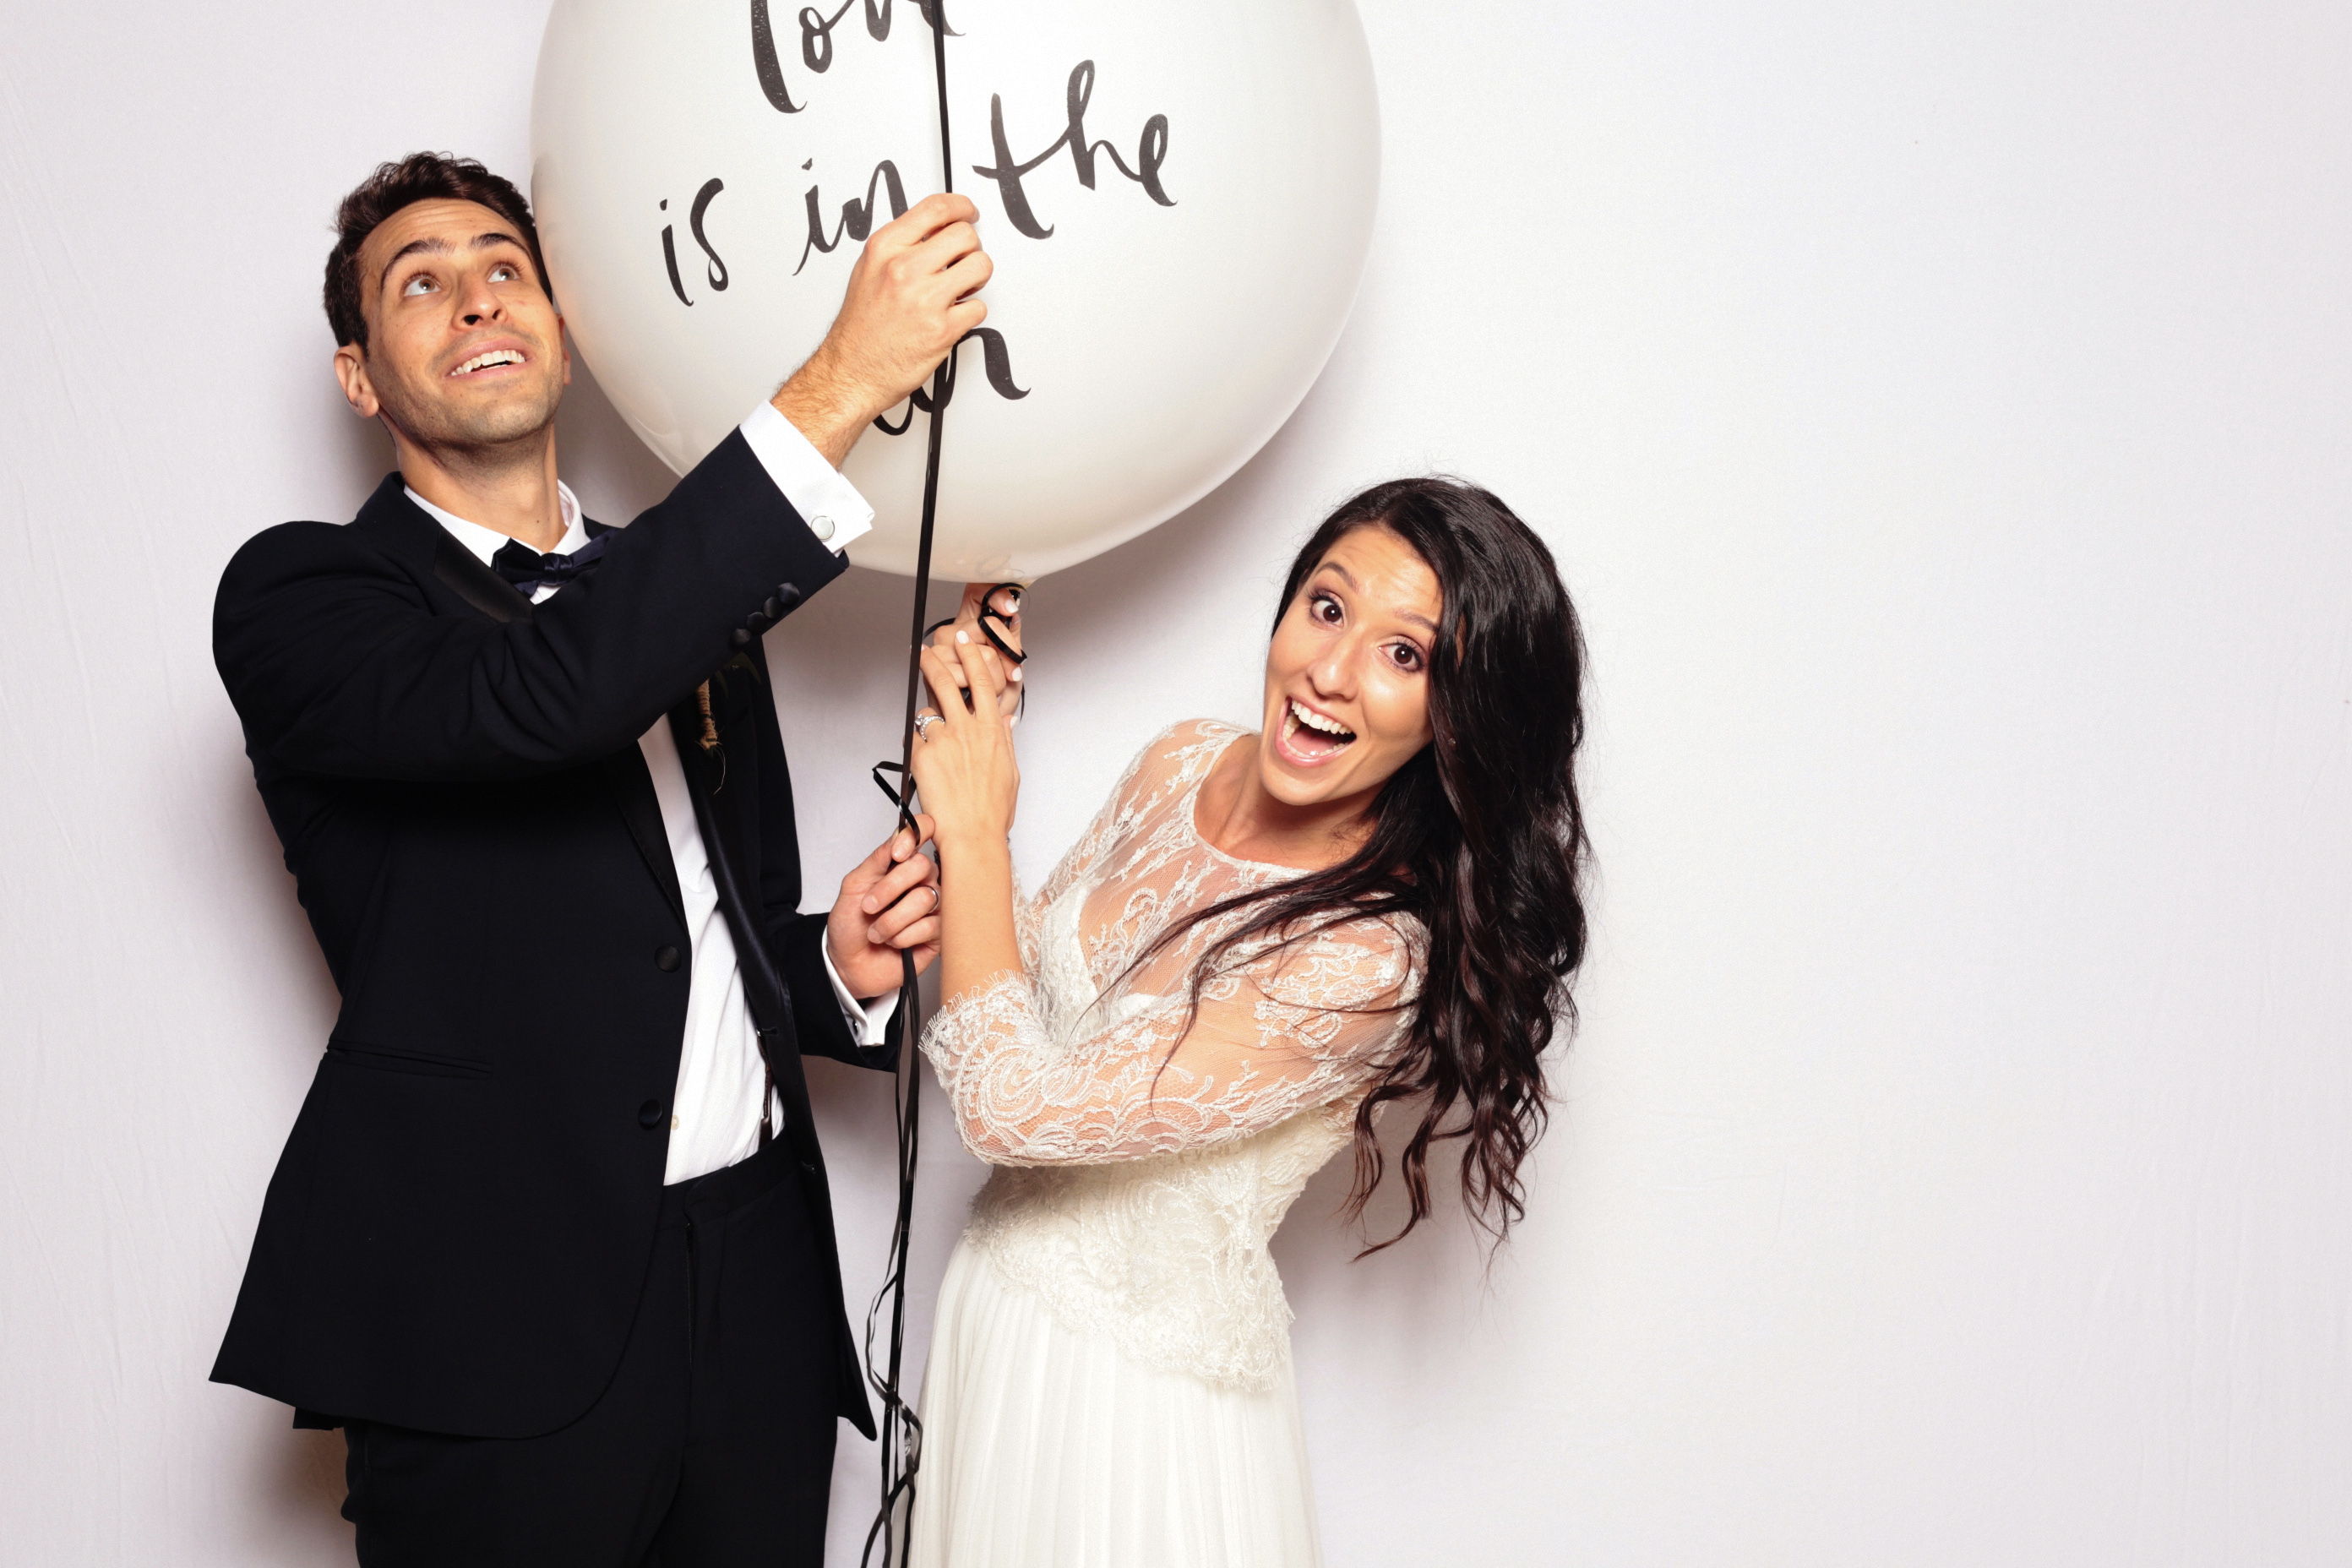 photo props couple large balloon with writing